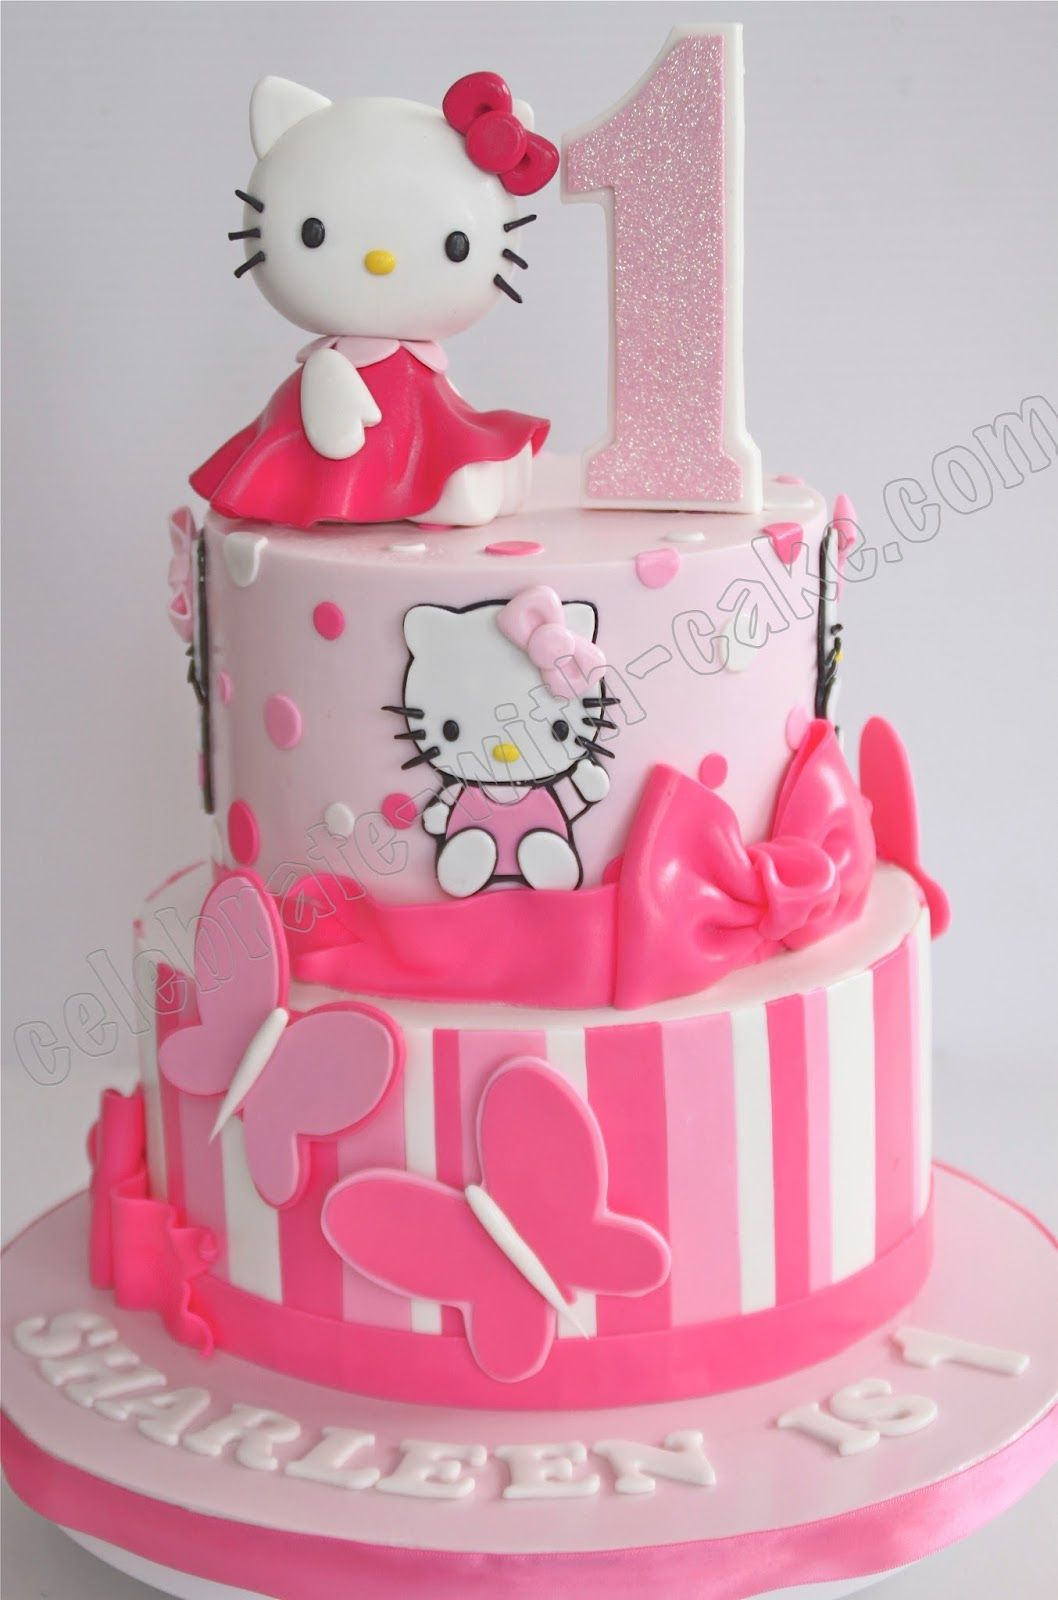 Groovy 1St Birthday Hello Kitty 2 Tier Cake Hello Kitty Birthday Cake Funny Birthday Cards Online Inifodamsfinfo